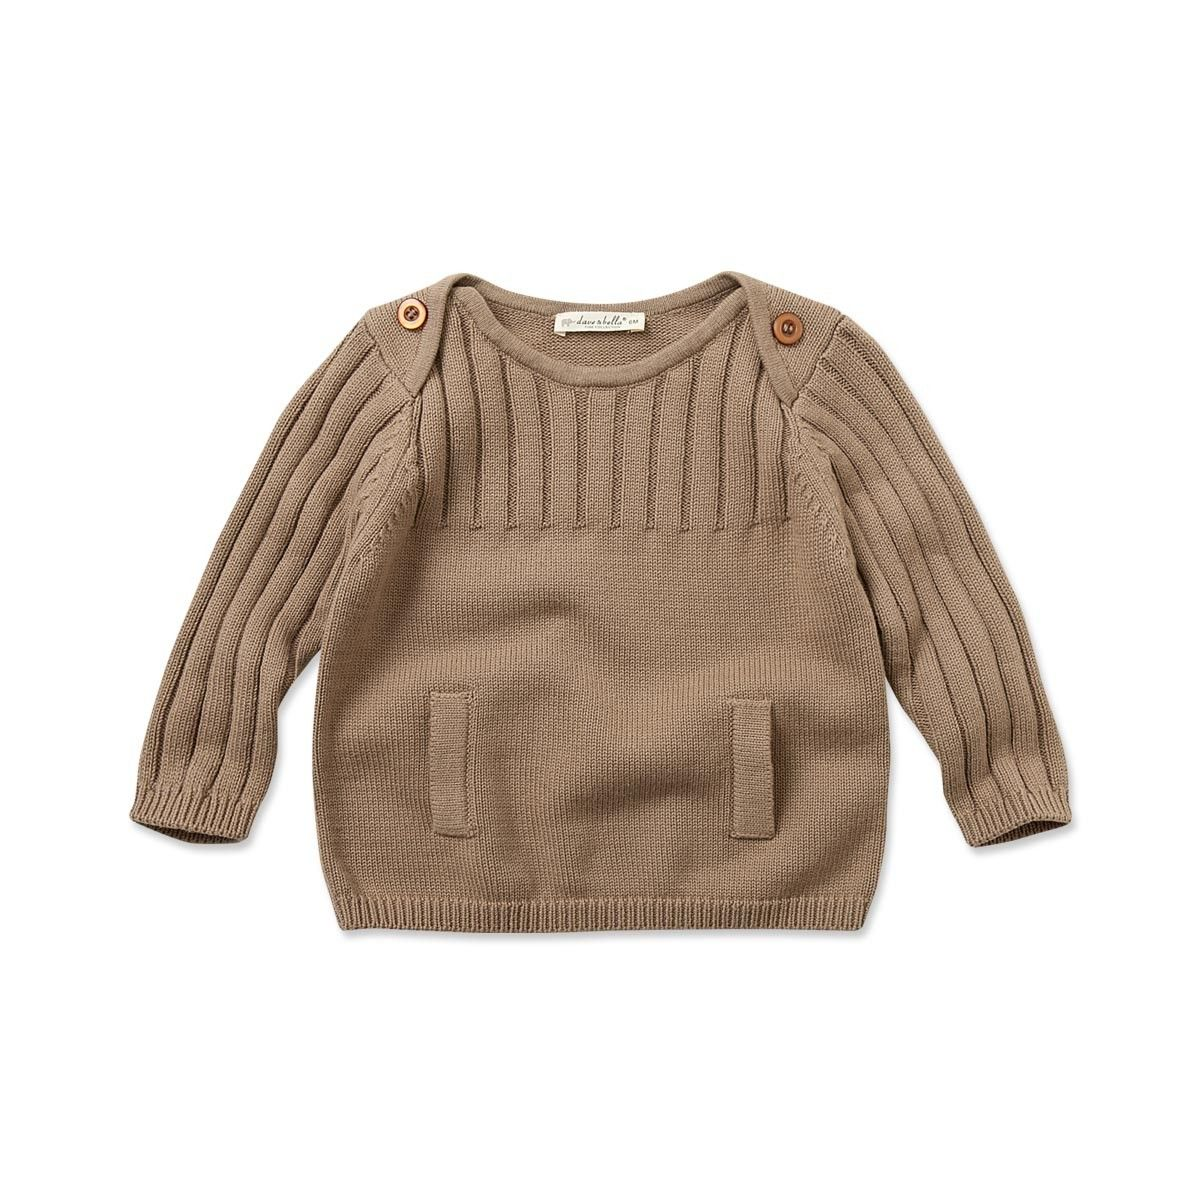 Knitted Cotton Sweater - Sweaters & Cardigans - Baby girls | Dave ...